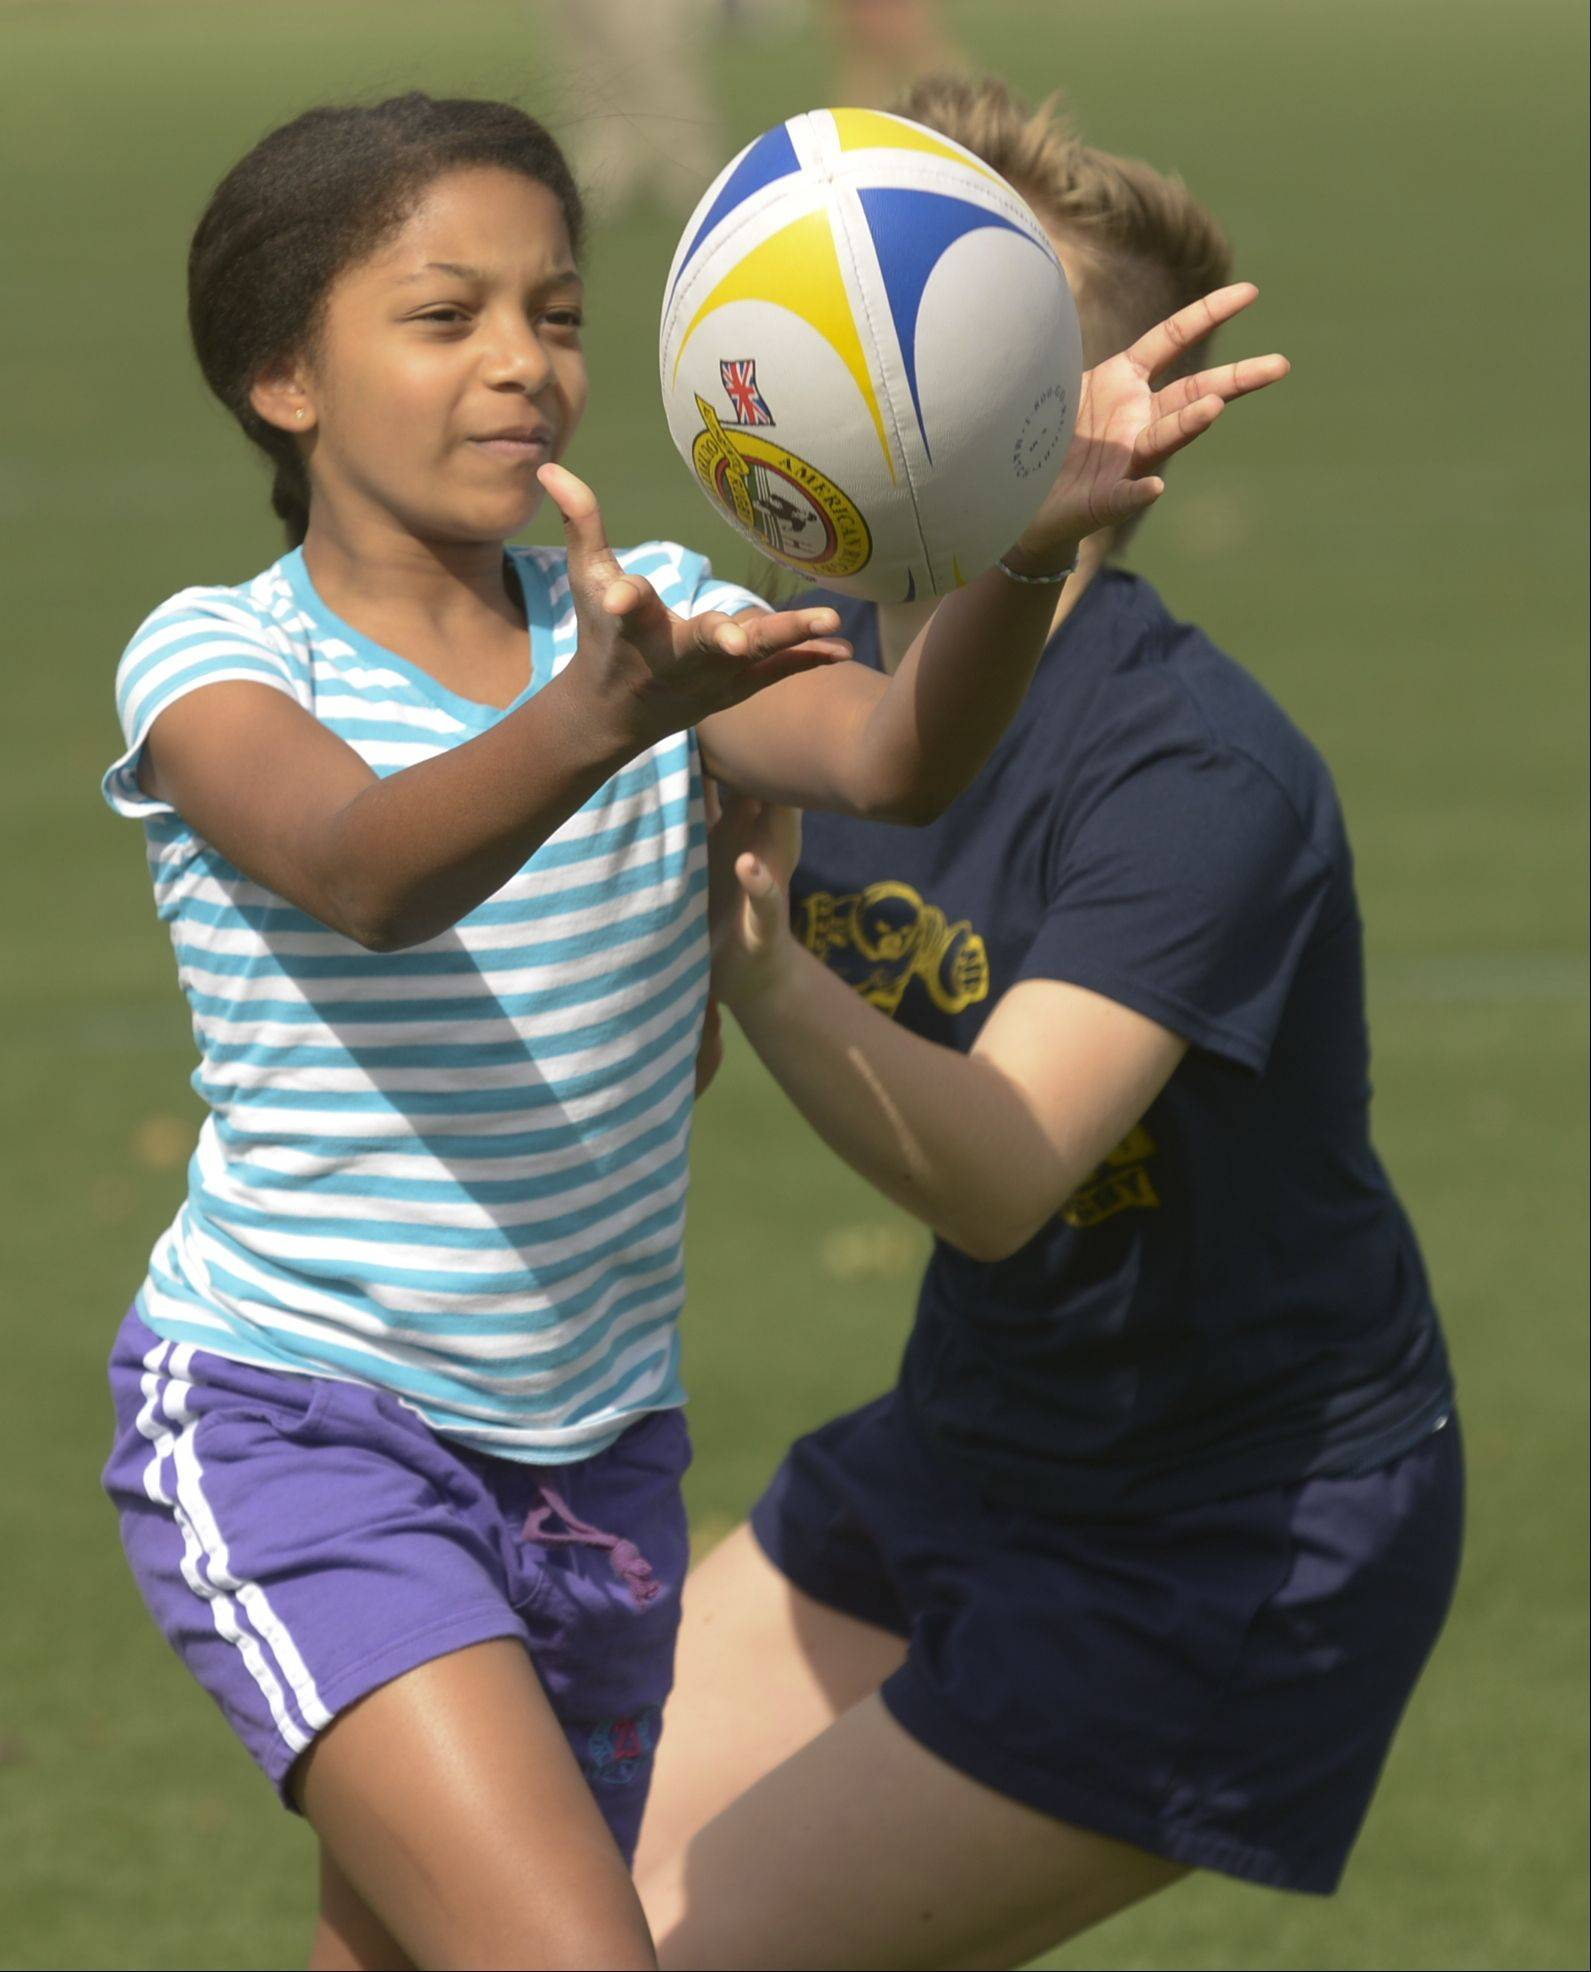 Anaise Fitzpatrick, 10, of Lake Vila, attends the Girls Day of Rugby hosted by the Illinois Youth Rugby Association at Olympic Park in Schaumburg Sunday.